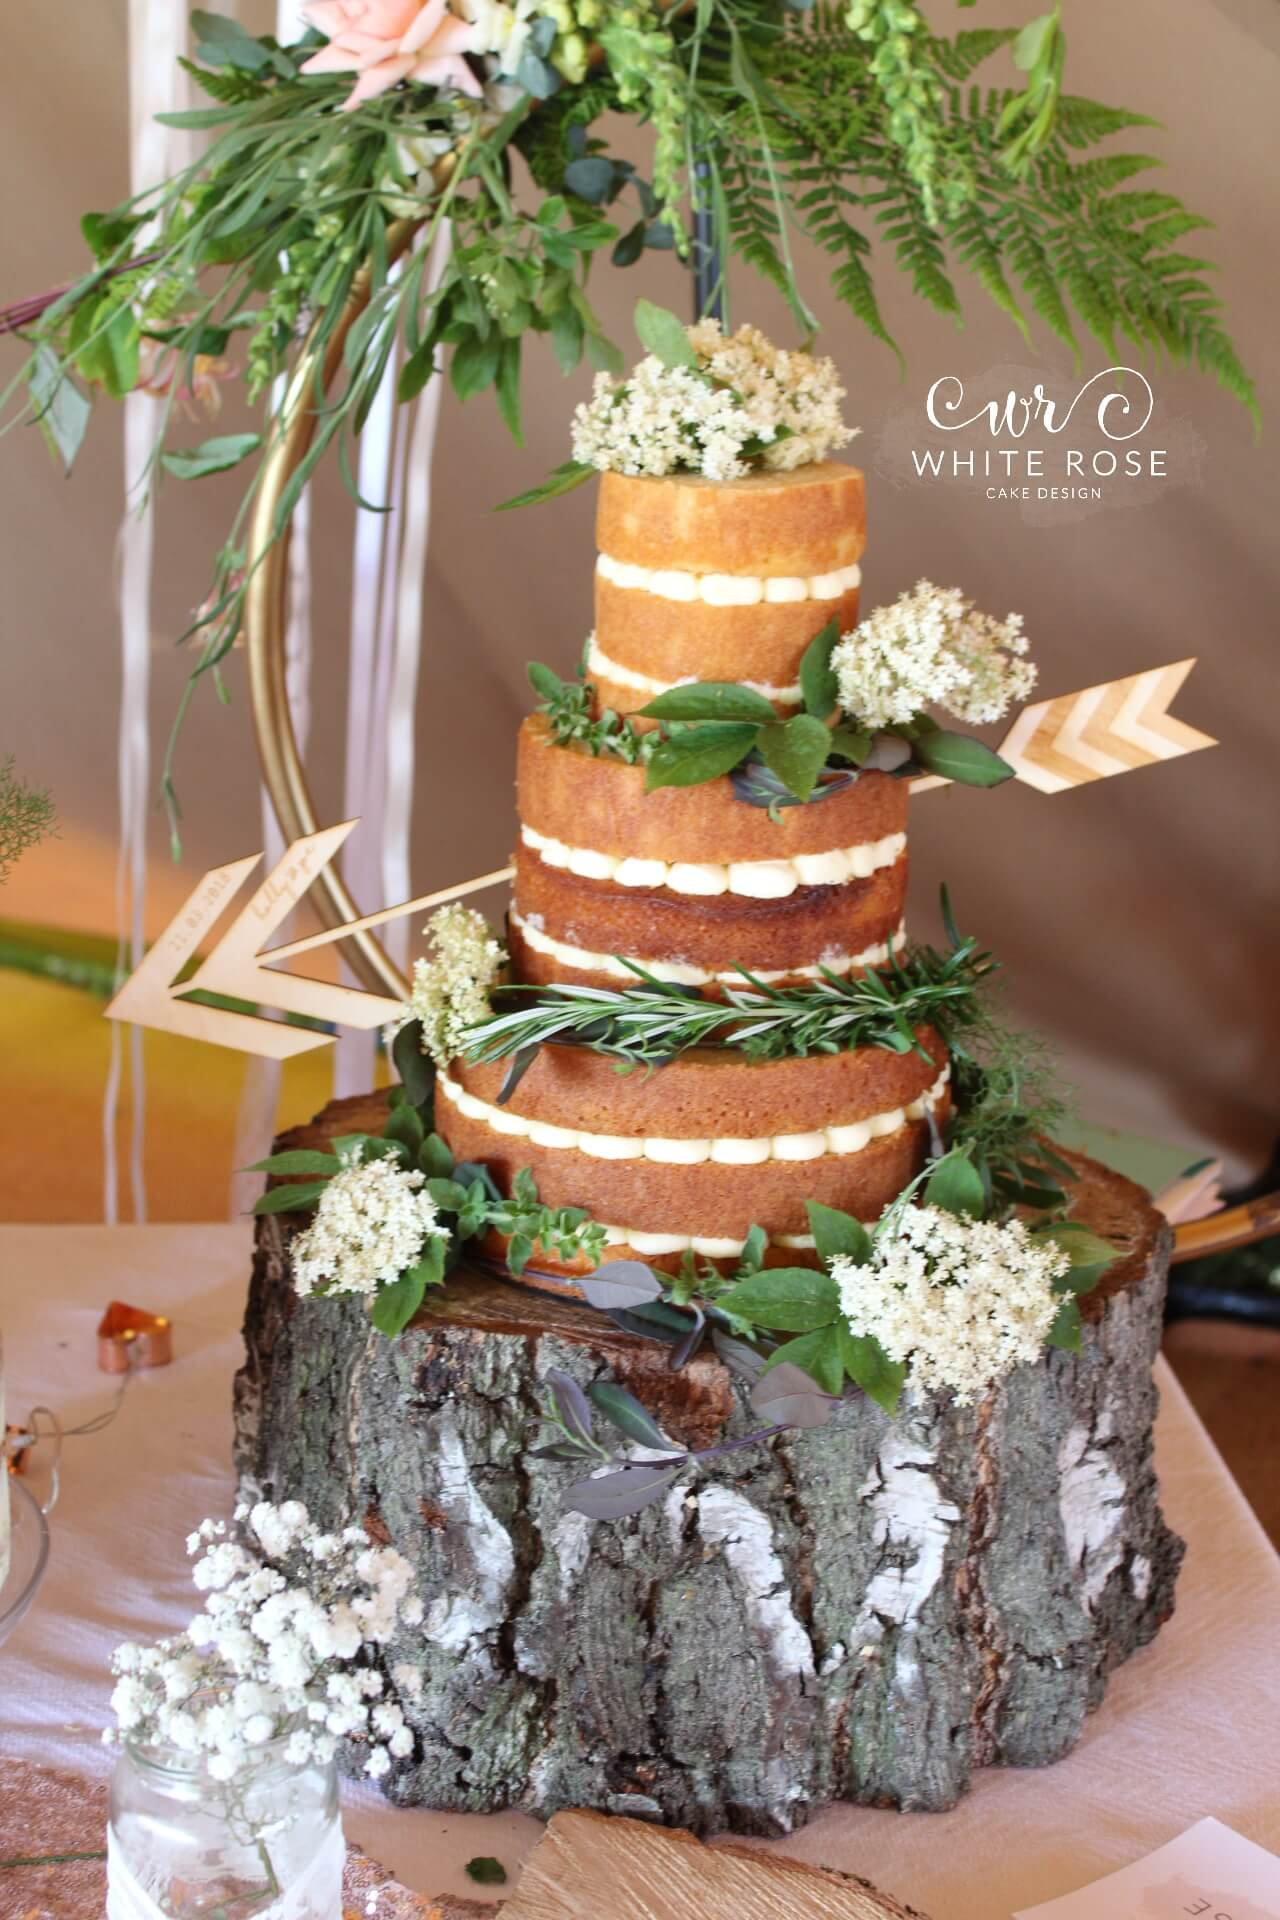 Rustic Three Tier Wedding Cake With Arrow And Elder Flowers On Log By White Rose